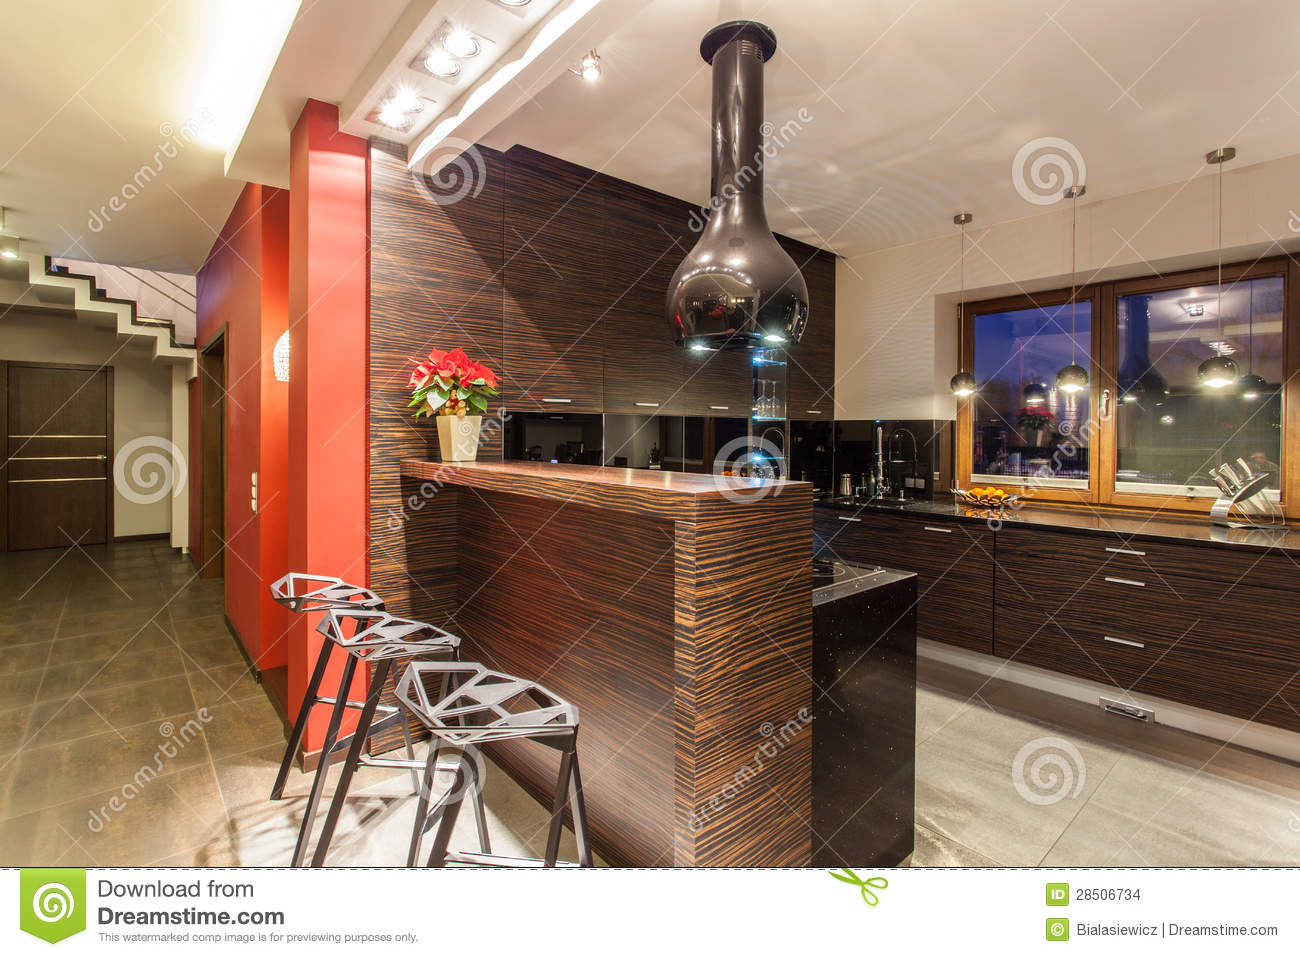 maison rouge cuisine avec le compteur de bar photo stock. Black Bedroom Furniture Sets. Home Design Ideas